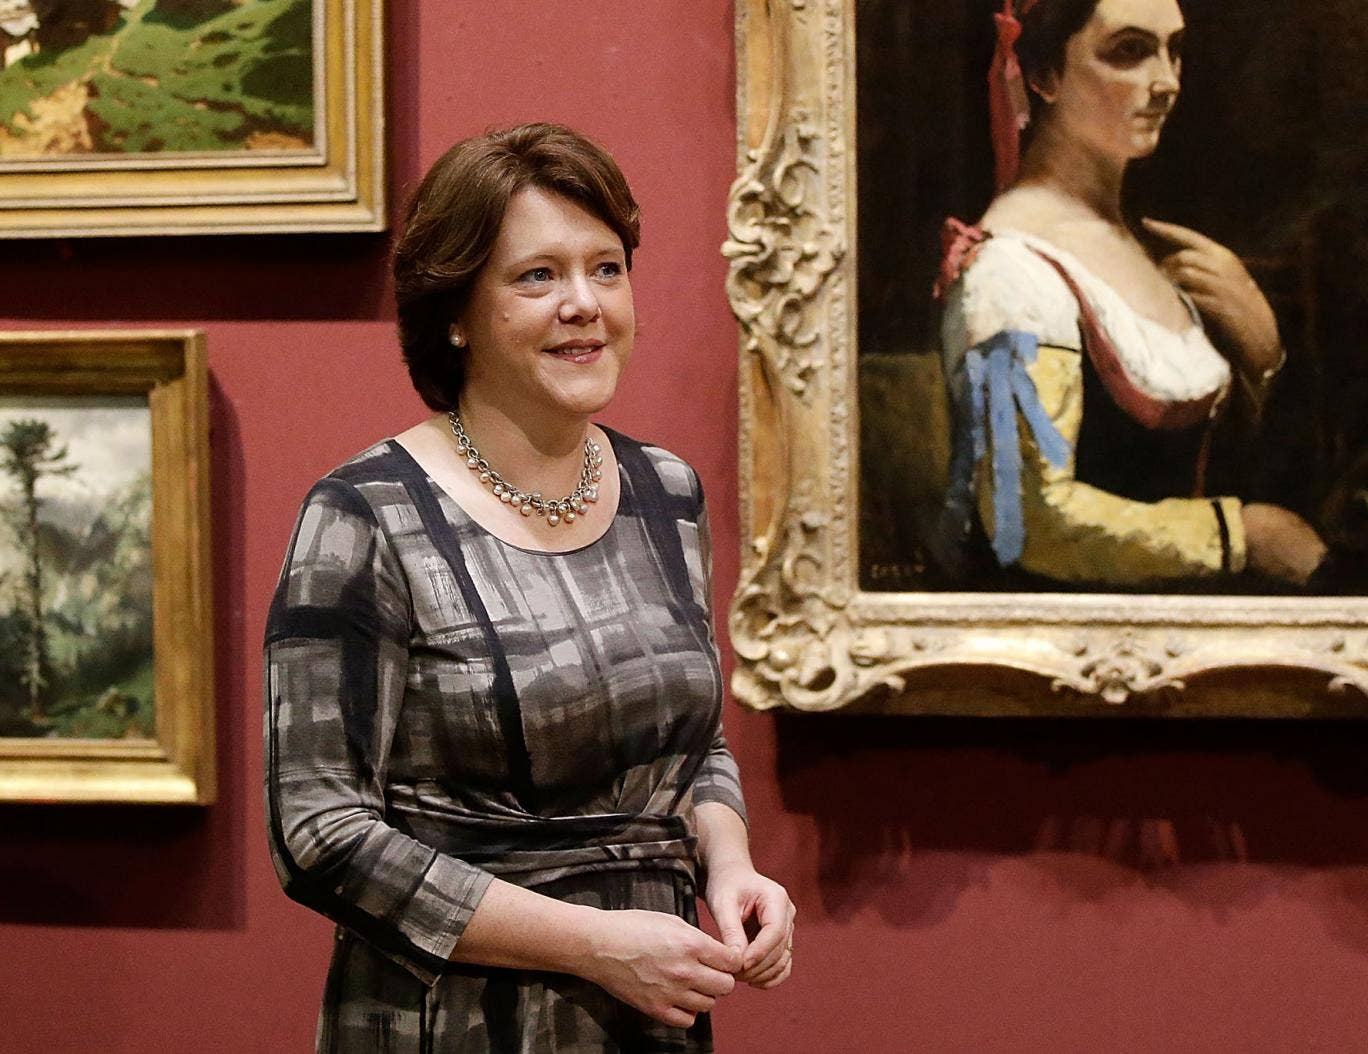 Culture secretary Maria Miller is calling for the support of arts organisations to make the 'economic case' against further cuts